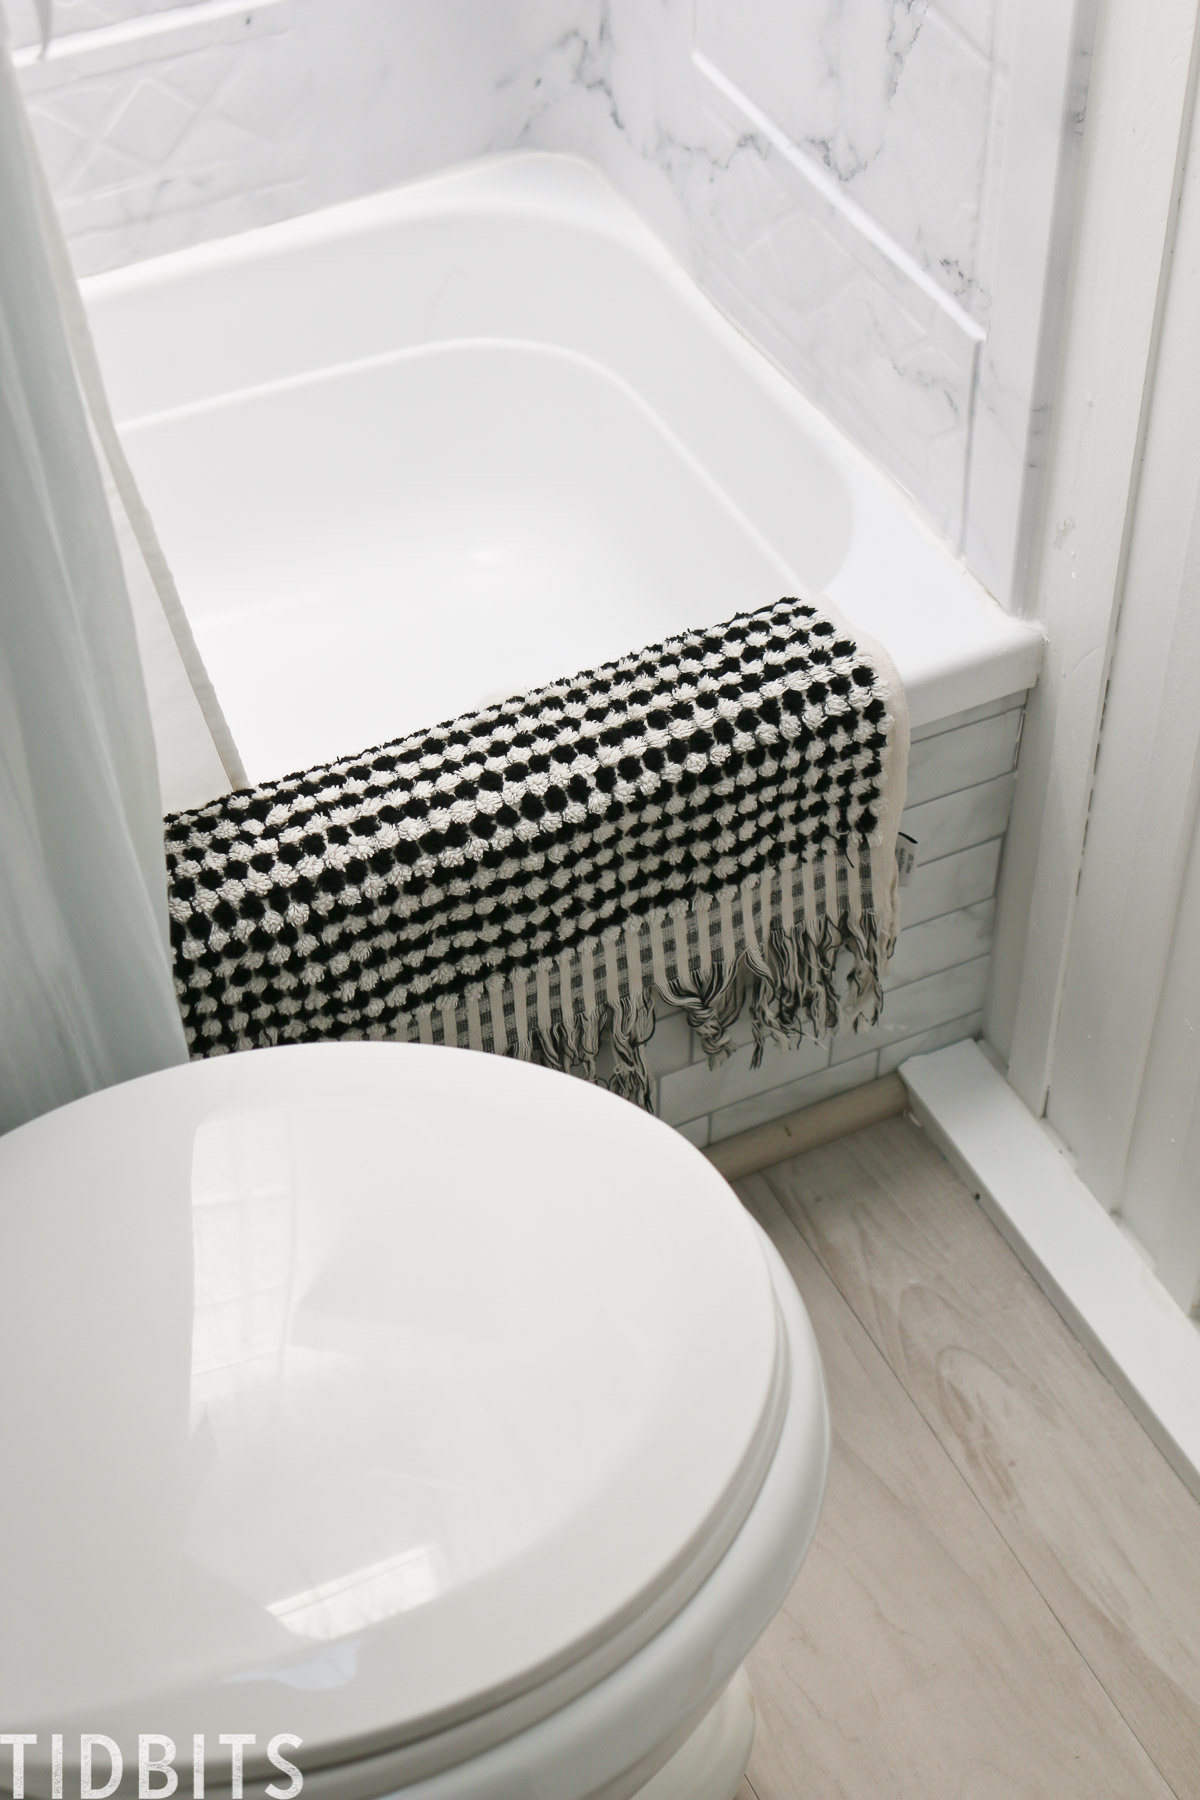 RV bathroom solutions, rug